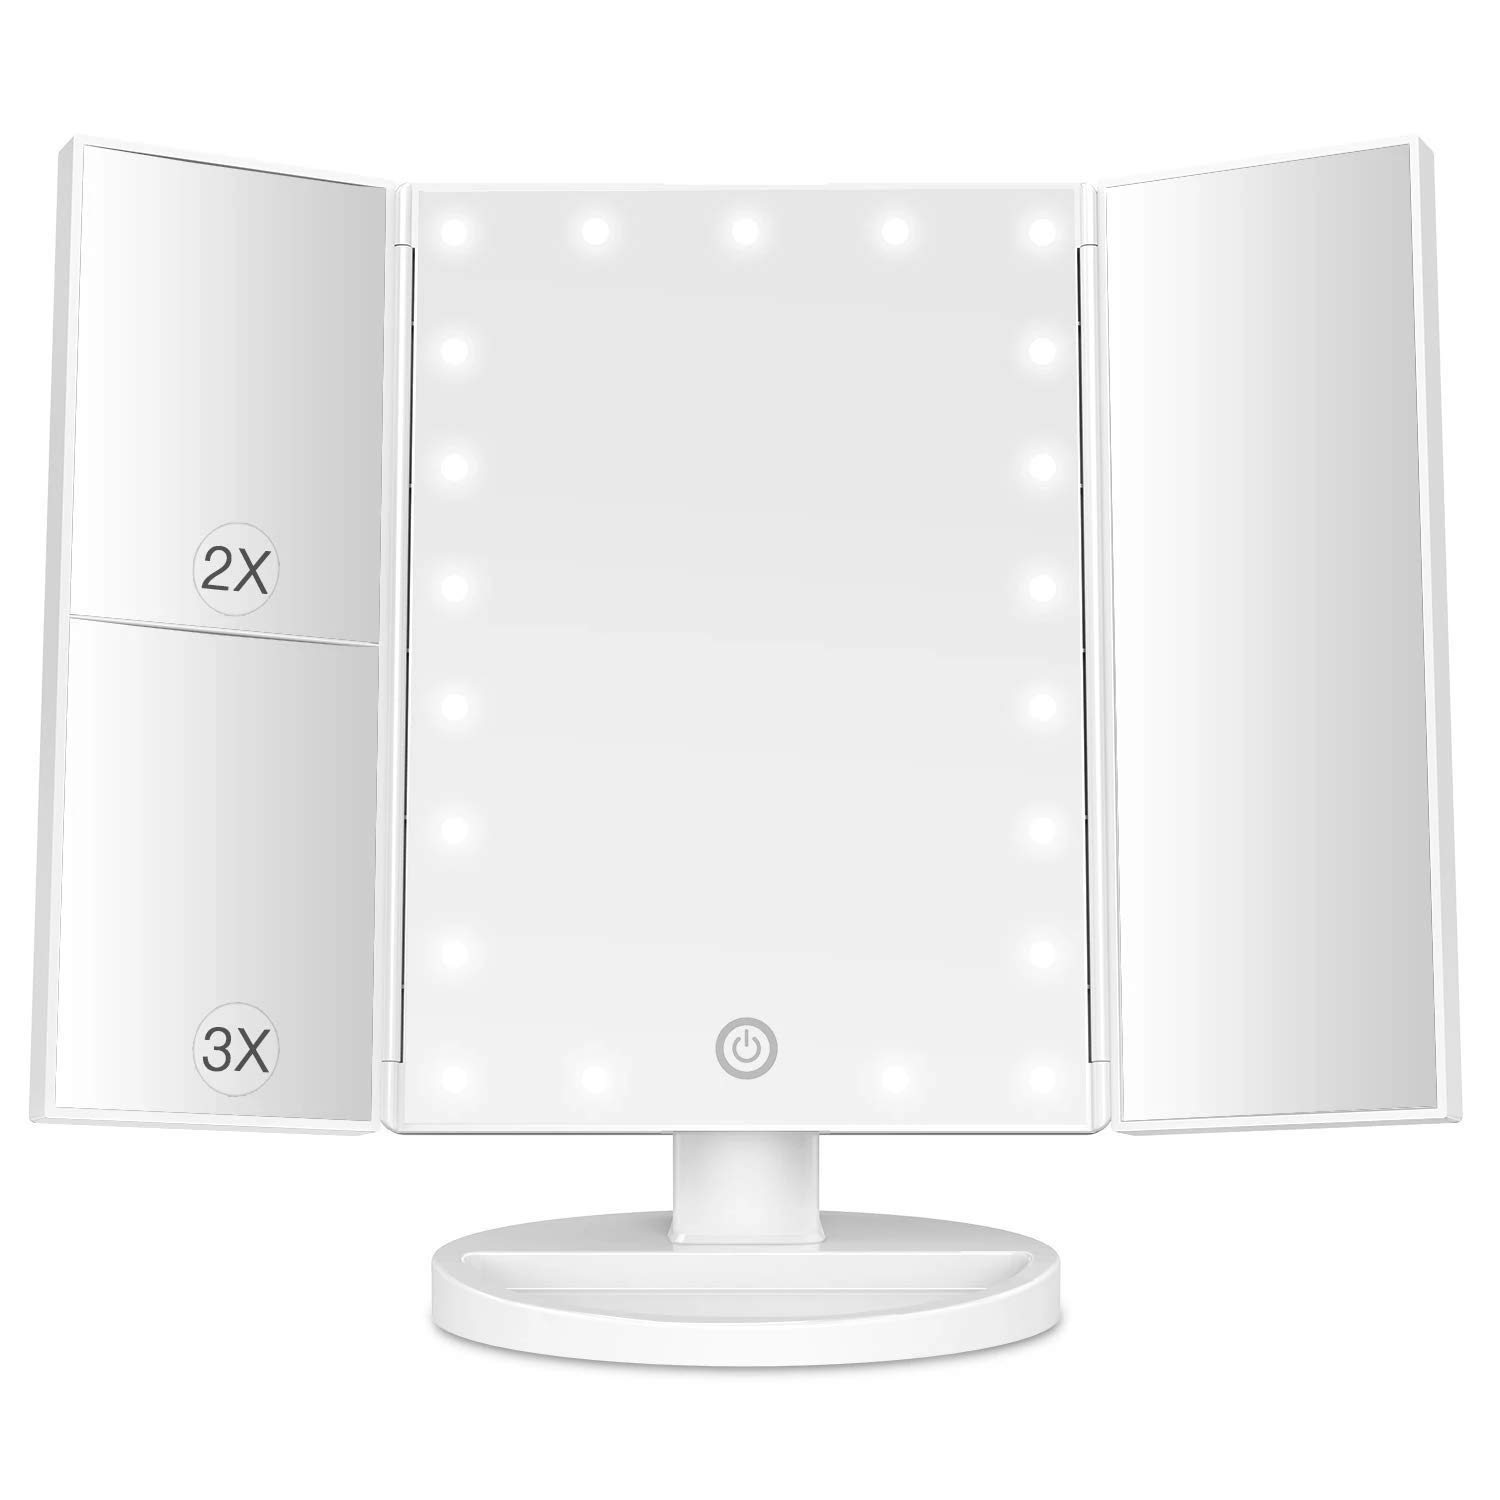 BESTOPE Makeup Vanity Mirror with Lights, 2X 3X Magnification, 21 Led Lighted Mirror with Touch Screen,180 Adjustable Rotation,Dual Power Supply,Portable Trifold Mirror